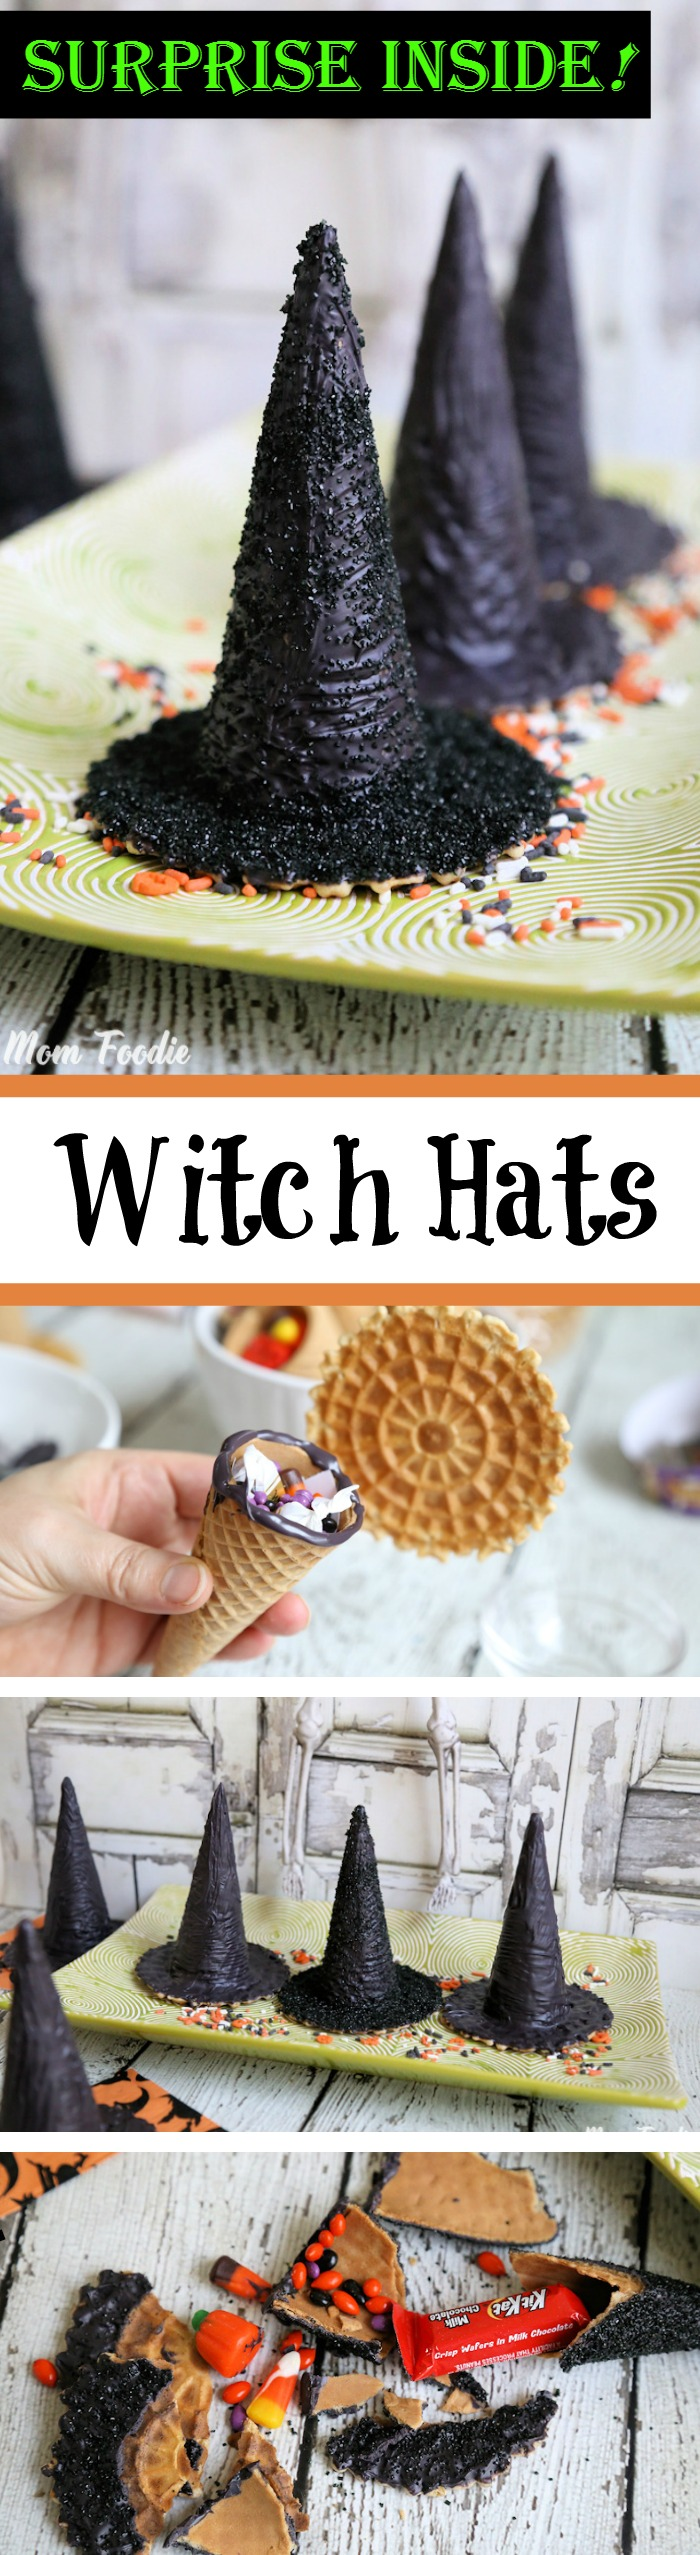 Surprise Inside Edible Witch Hats Treat Containers Tutorial